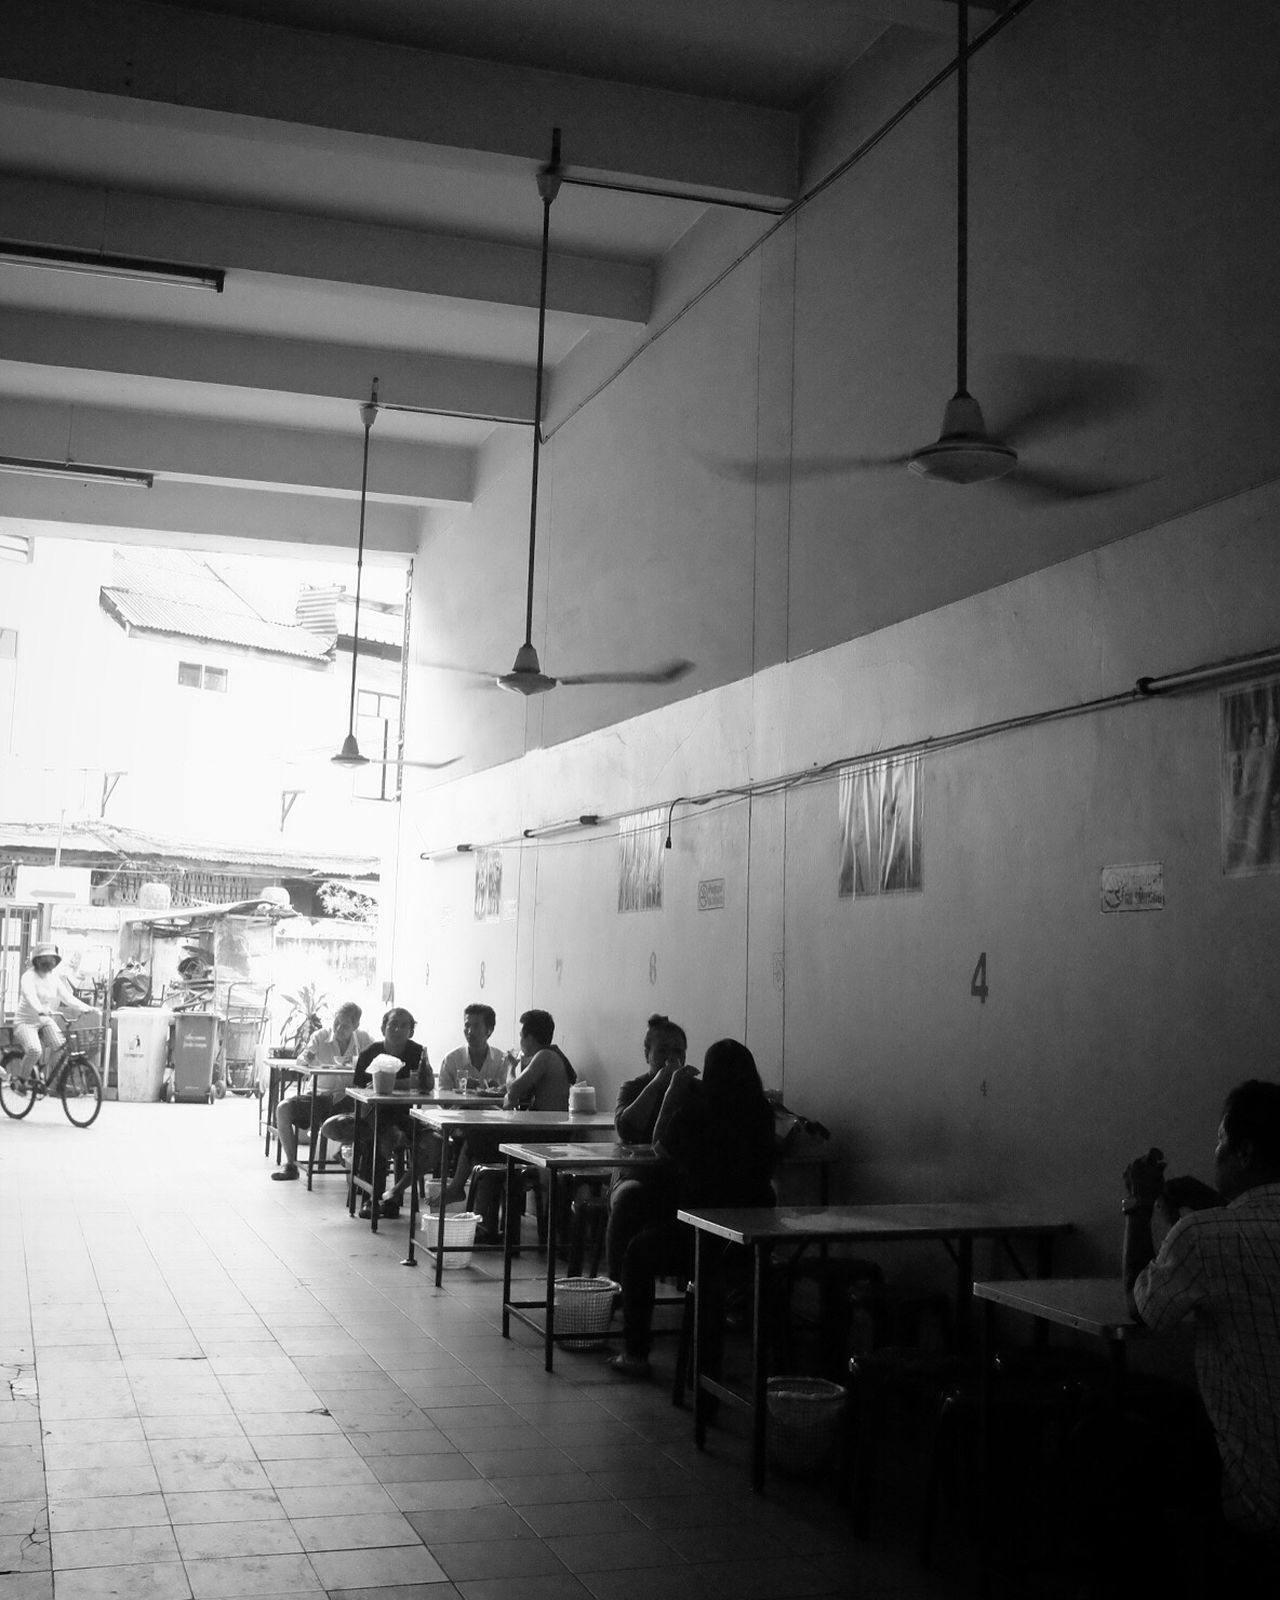 Restaurant Bangkok Bw_collection Black And White Street Photography Blackandwhite Monochrome Silhouette